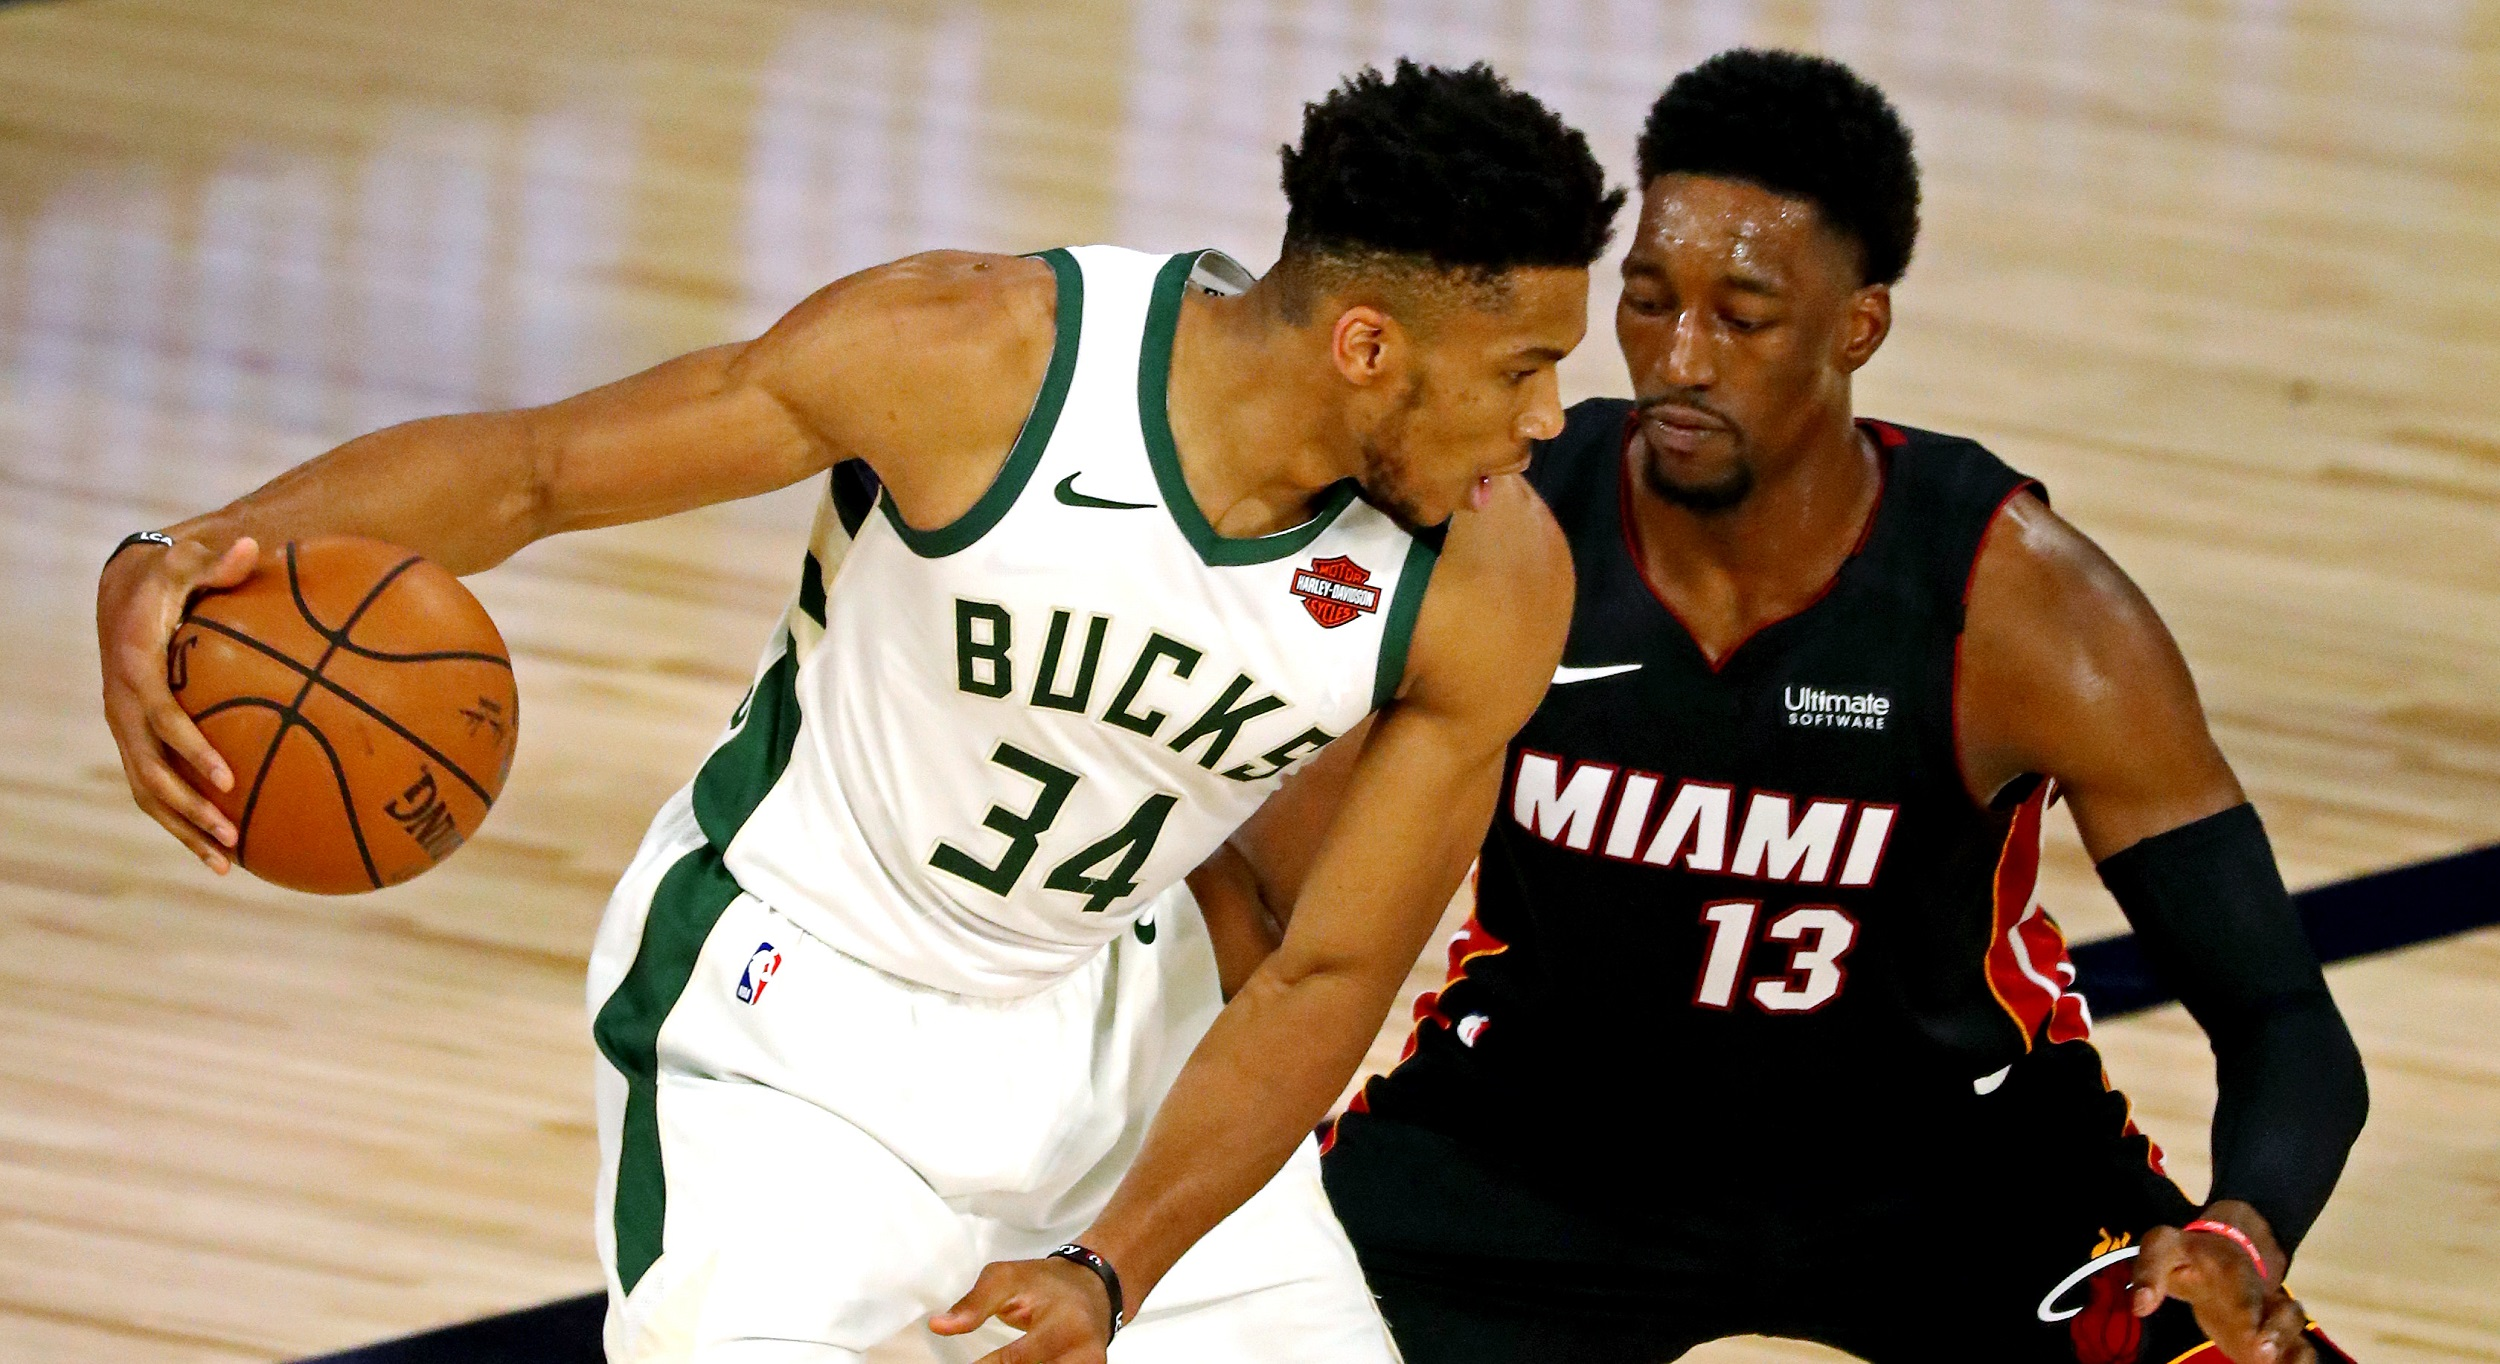 Series Preview: Bucks have chance for payback in matchup vs. Heat